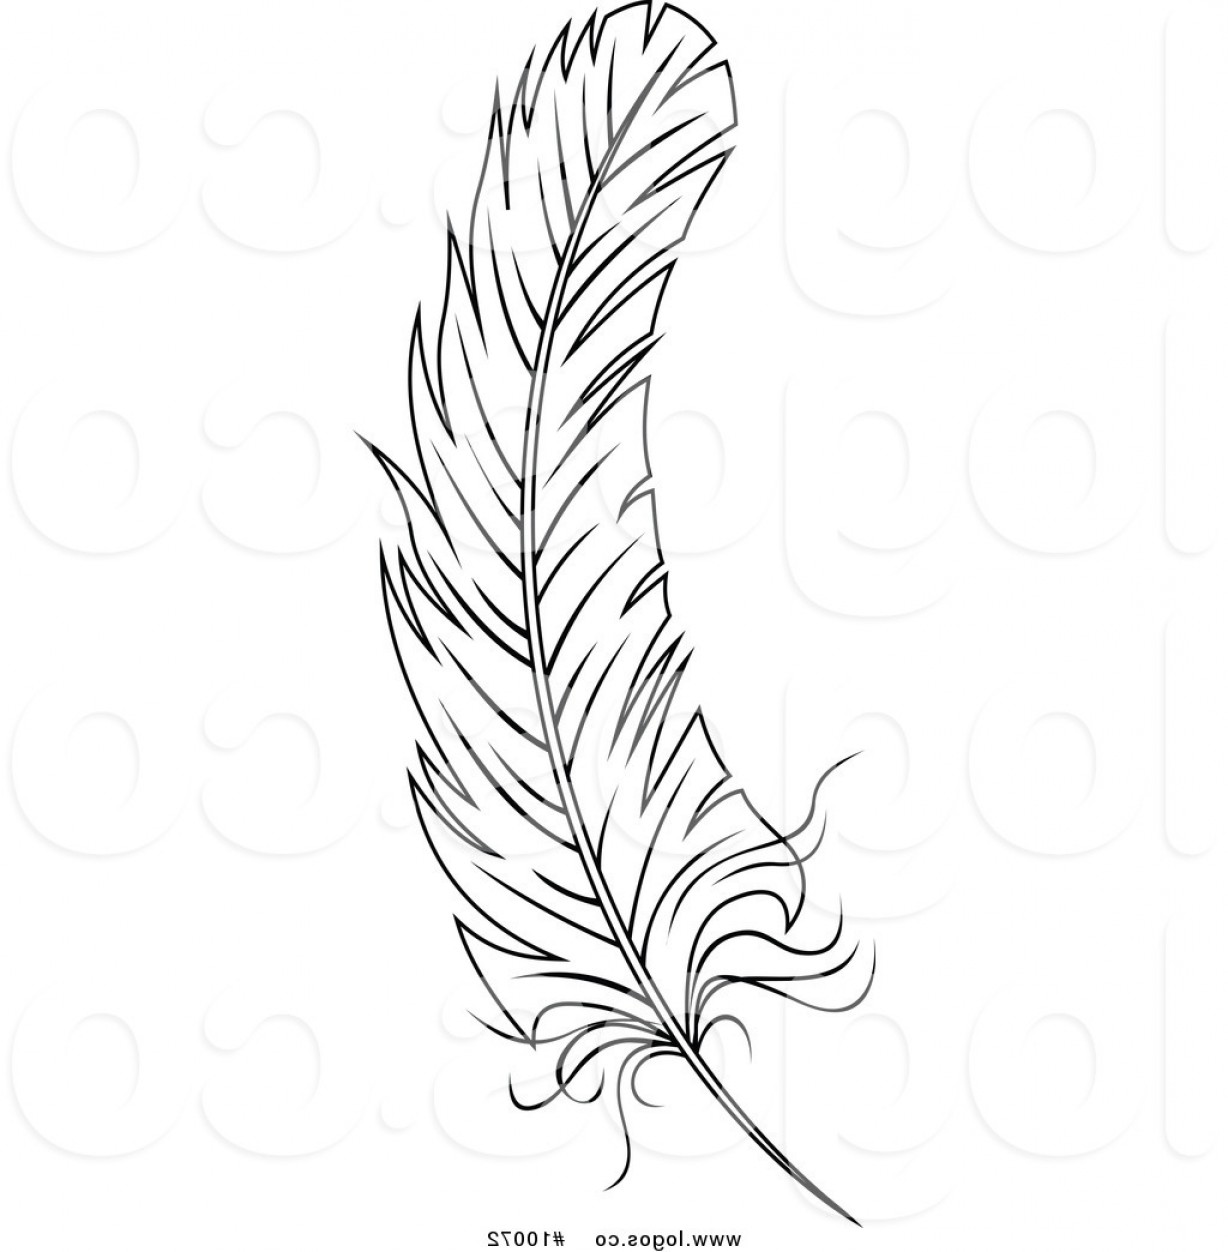 Feather clipart images black and white image transparent stock Best Of Vector Feather Clipart Black And White | KoolGadgetz image transparent stock